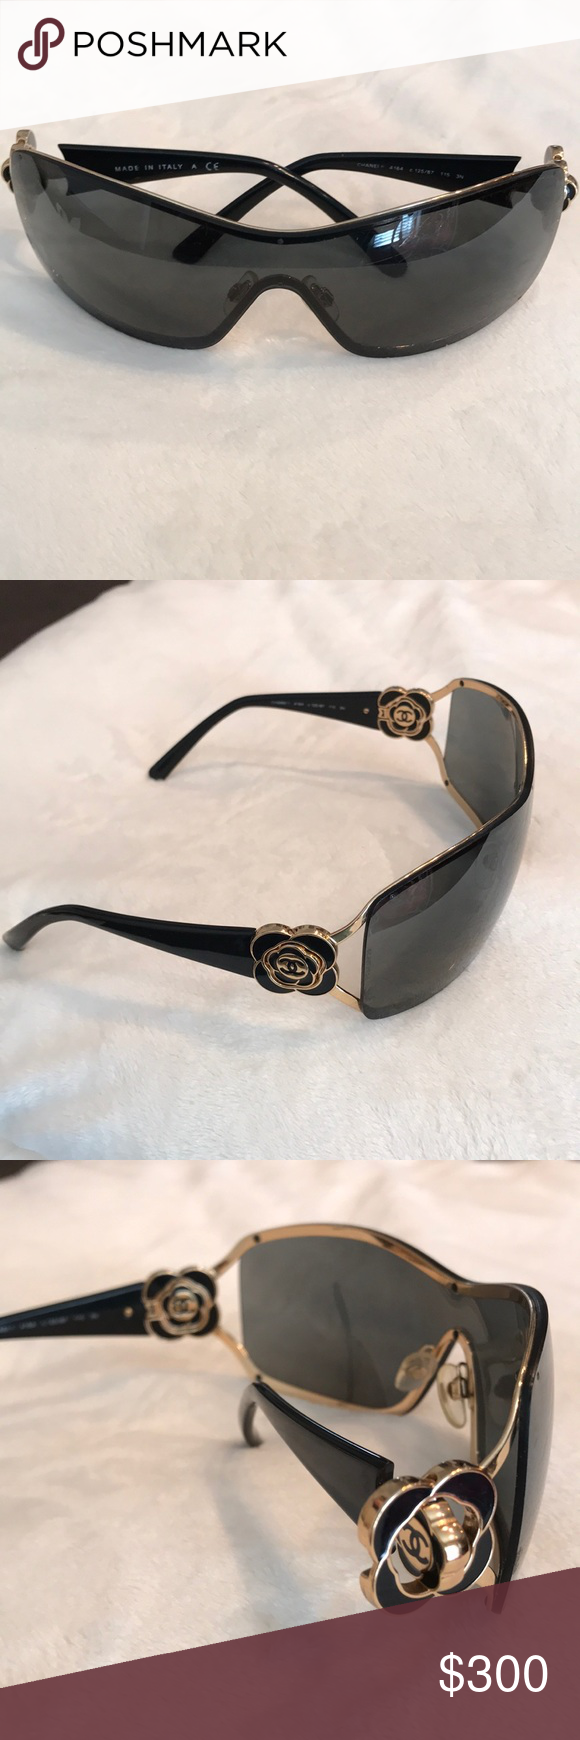 4e3932f729d Chanel Flower Sunglasses🏴 These cute sunglasses have one continuous front  lenses and gold and black